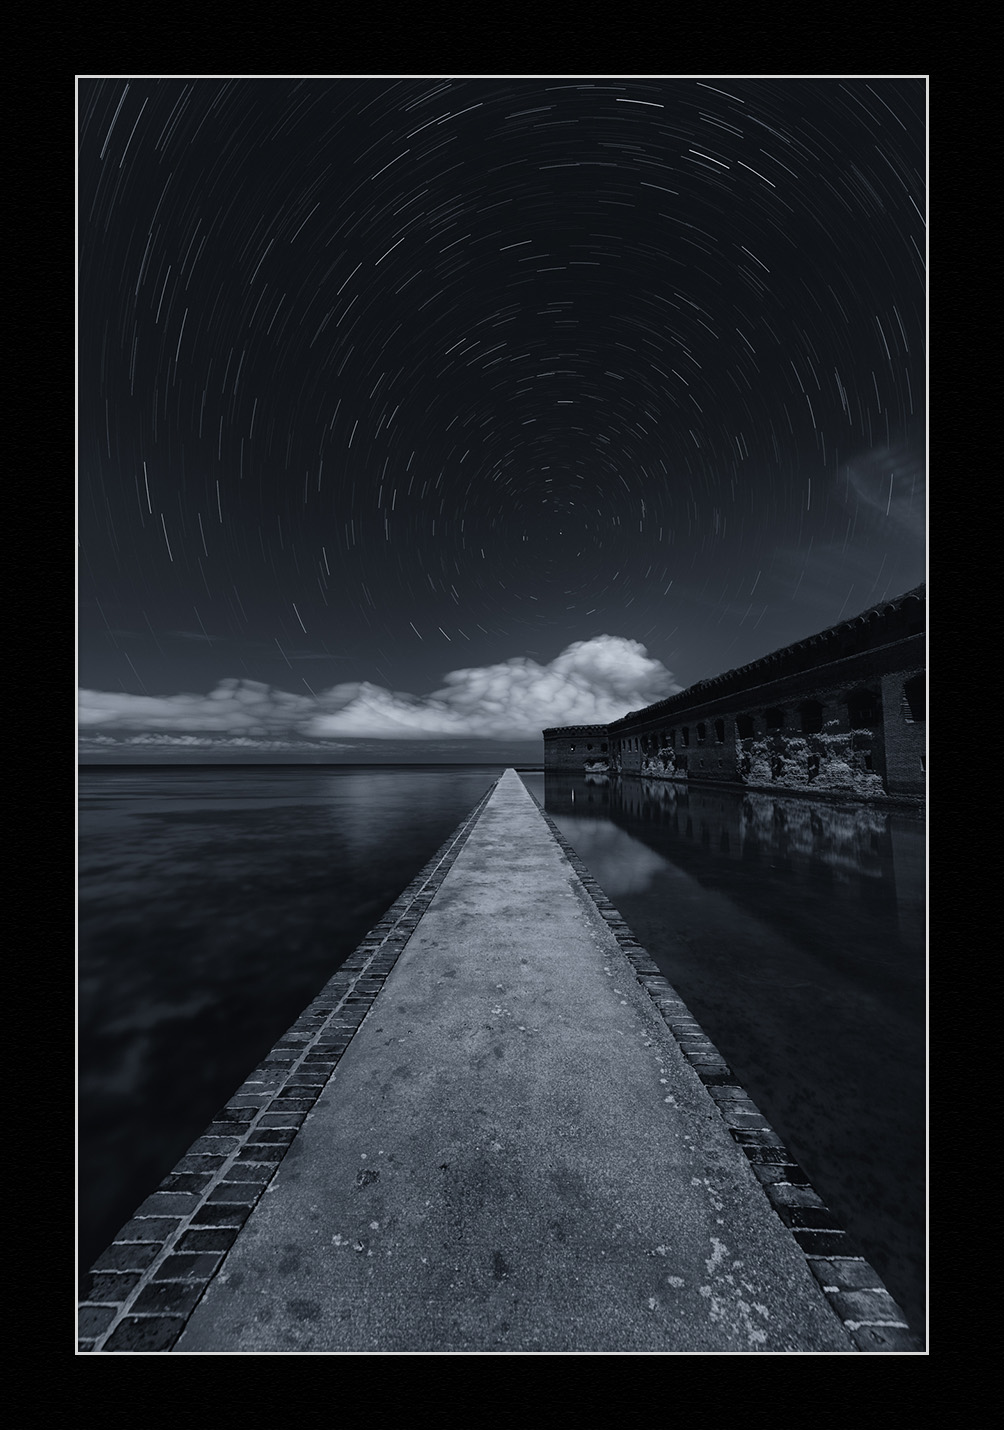 Star stack over the moat wall at Florida's Dry Tortugas National Park. © 2016 Gabriel Biderman.